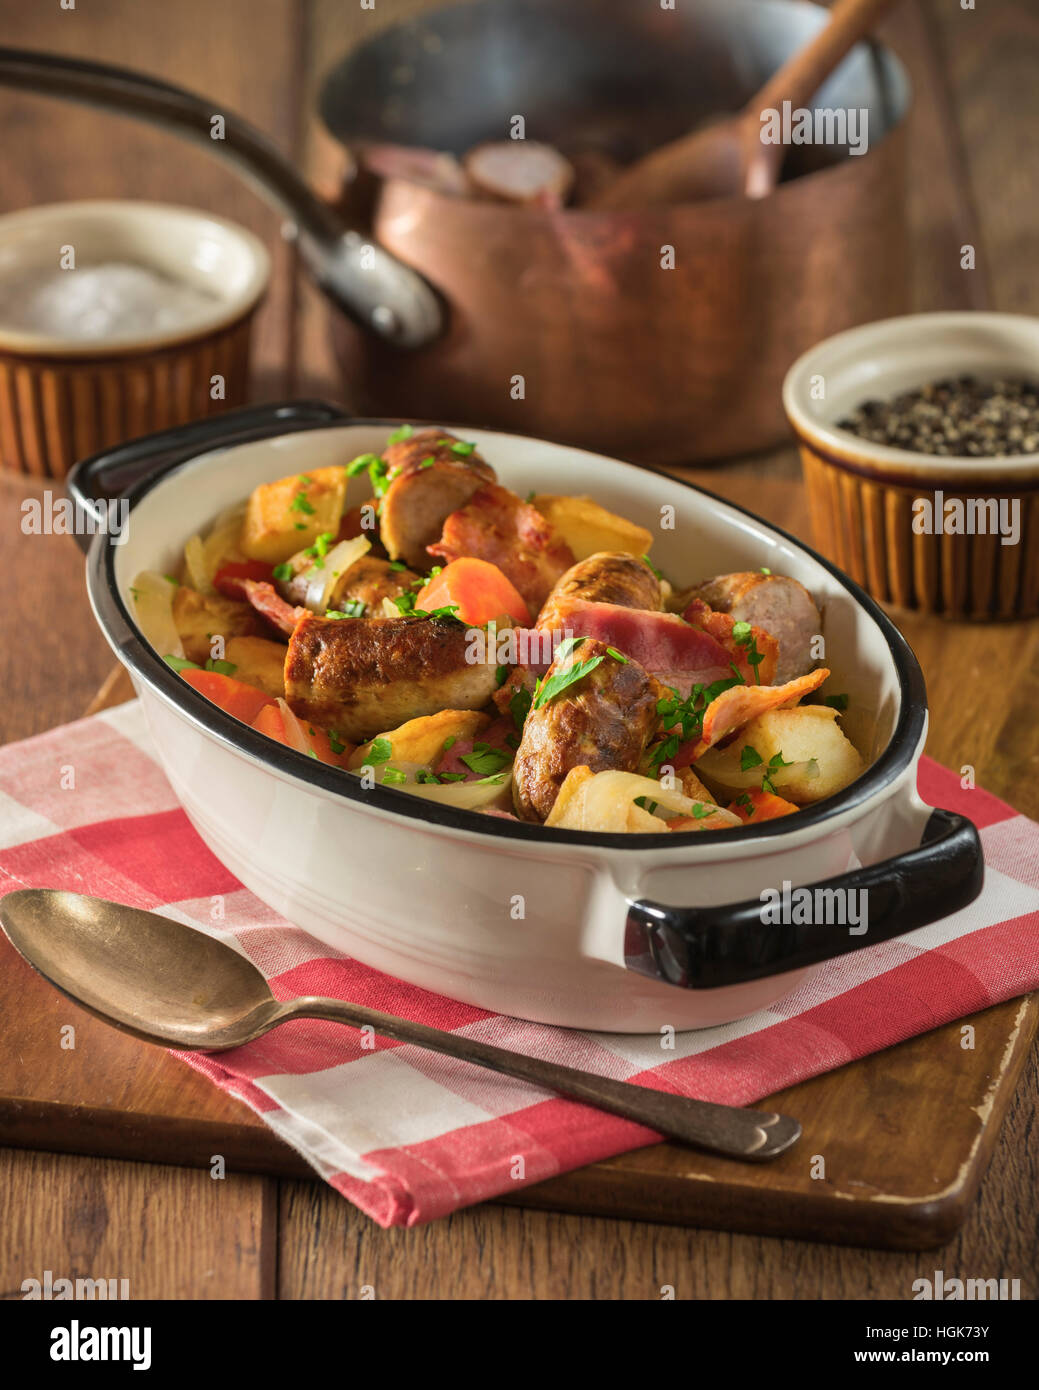 Dublin coddle. Traditional Irish potato, sausage, and bacon stew. Food Ireland - Stock Image